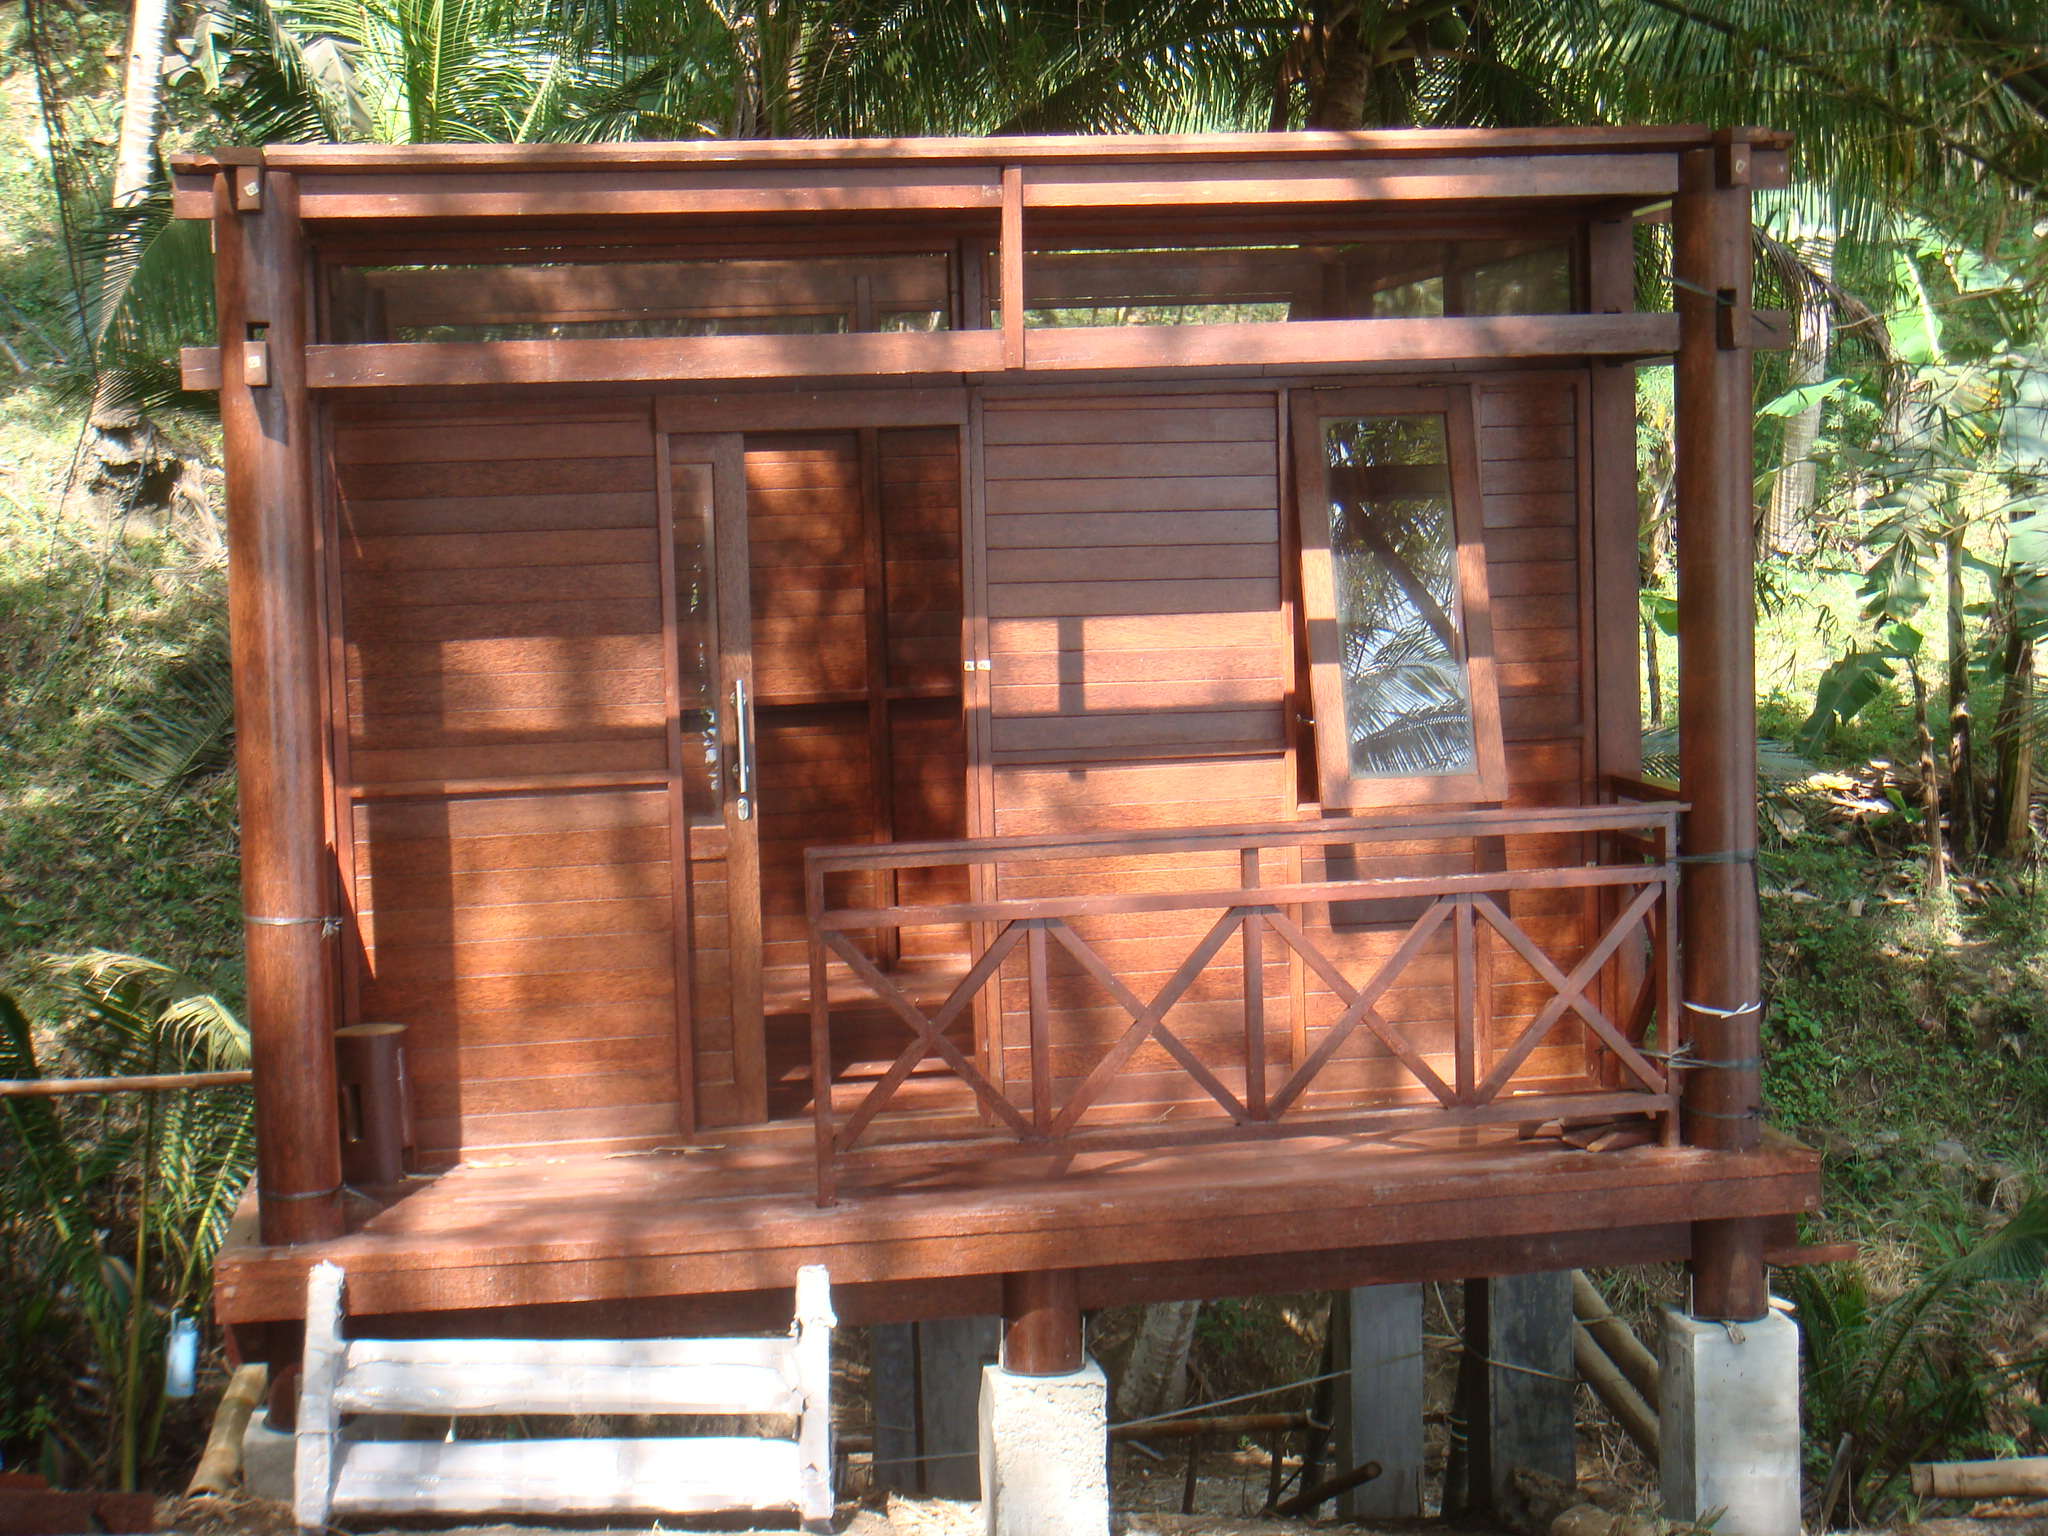 Cat Kusen Rumah Borax Dan Boric Acid | Gazebo Bali And Wooden House